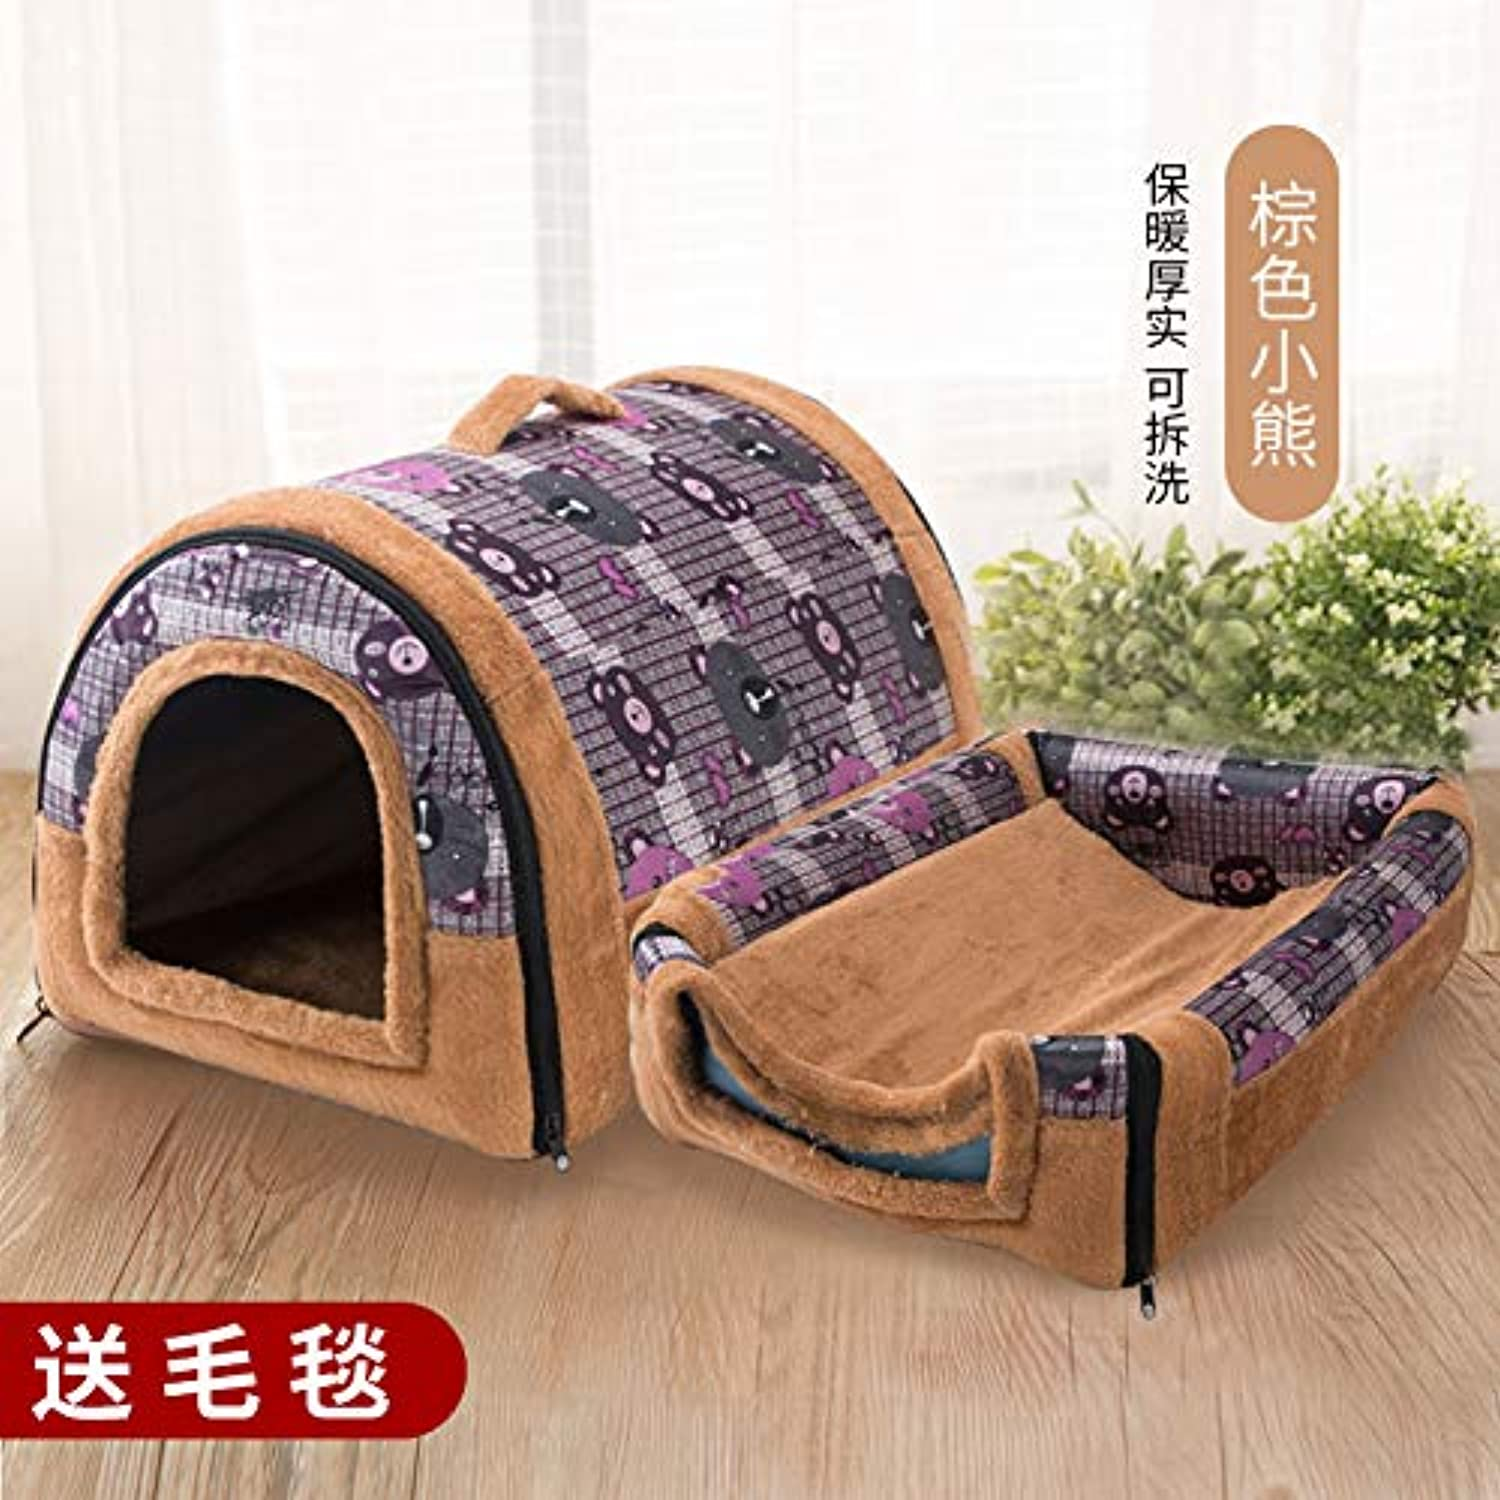 Kennel winter mediumsized small di dog house cat pet house bed washable four seasons universal yurt, brown bear, L, 60cm47cm45cm